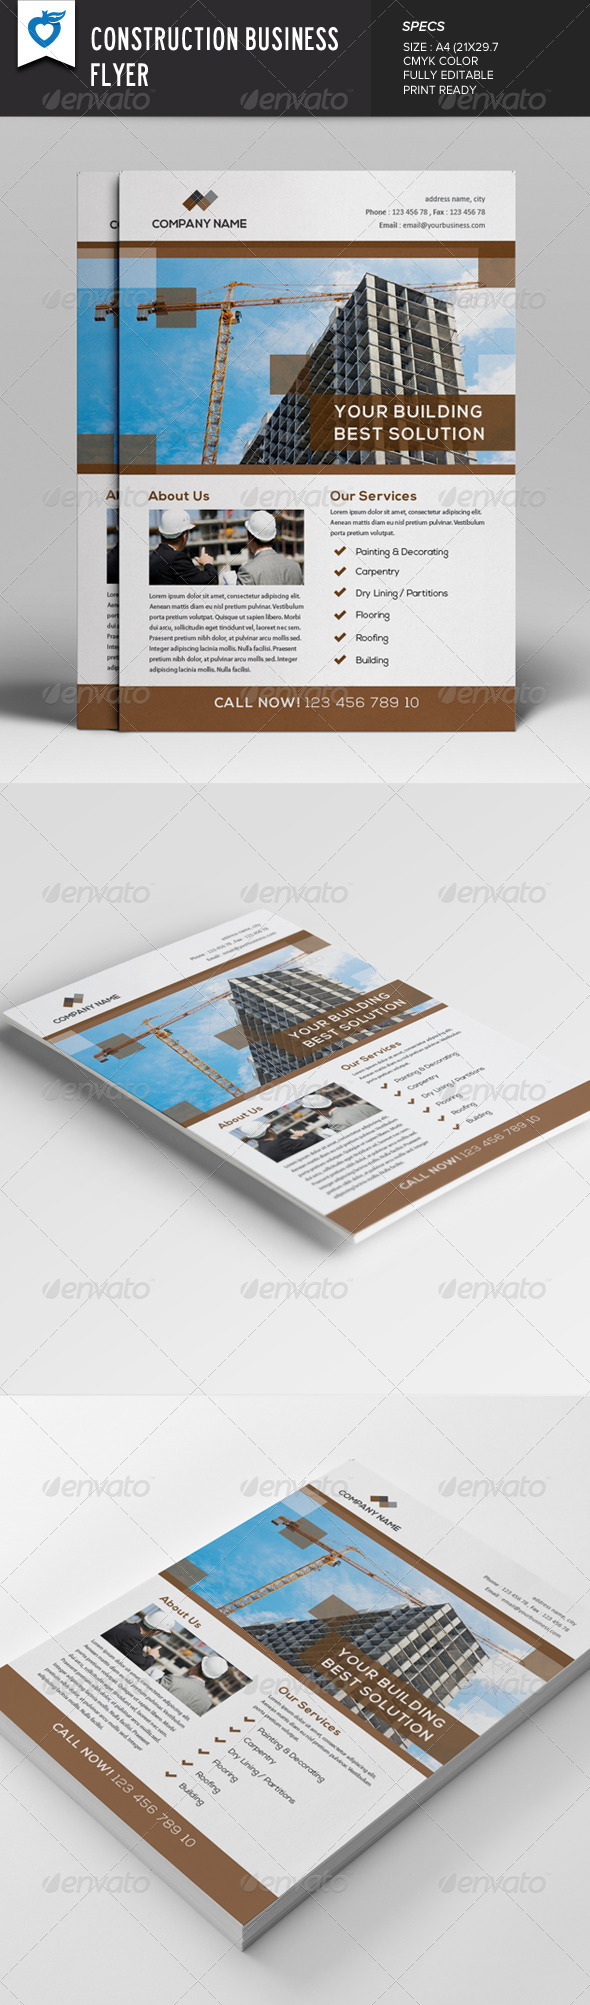 GraphicRiver Construction Business Flyer 7888773